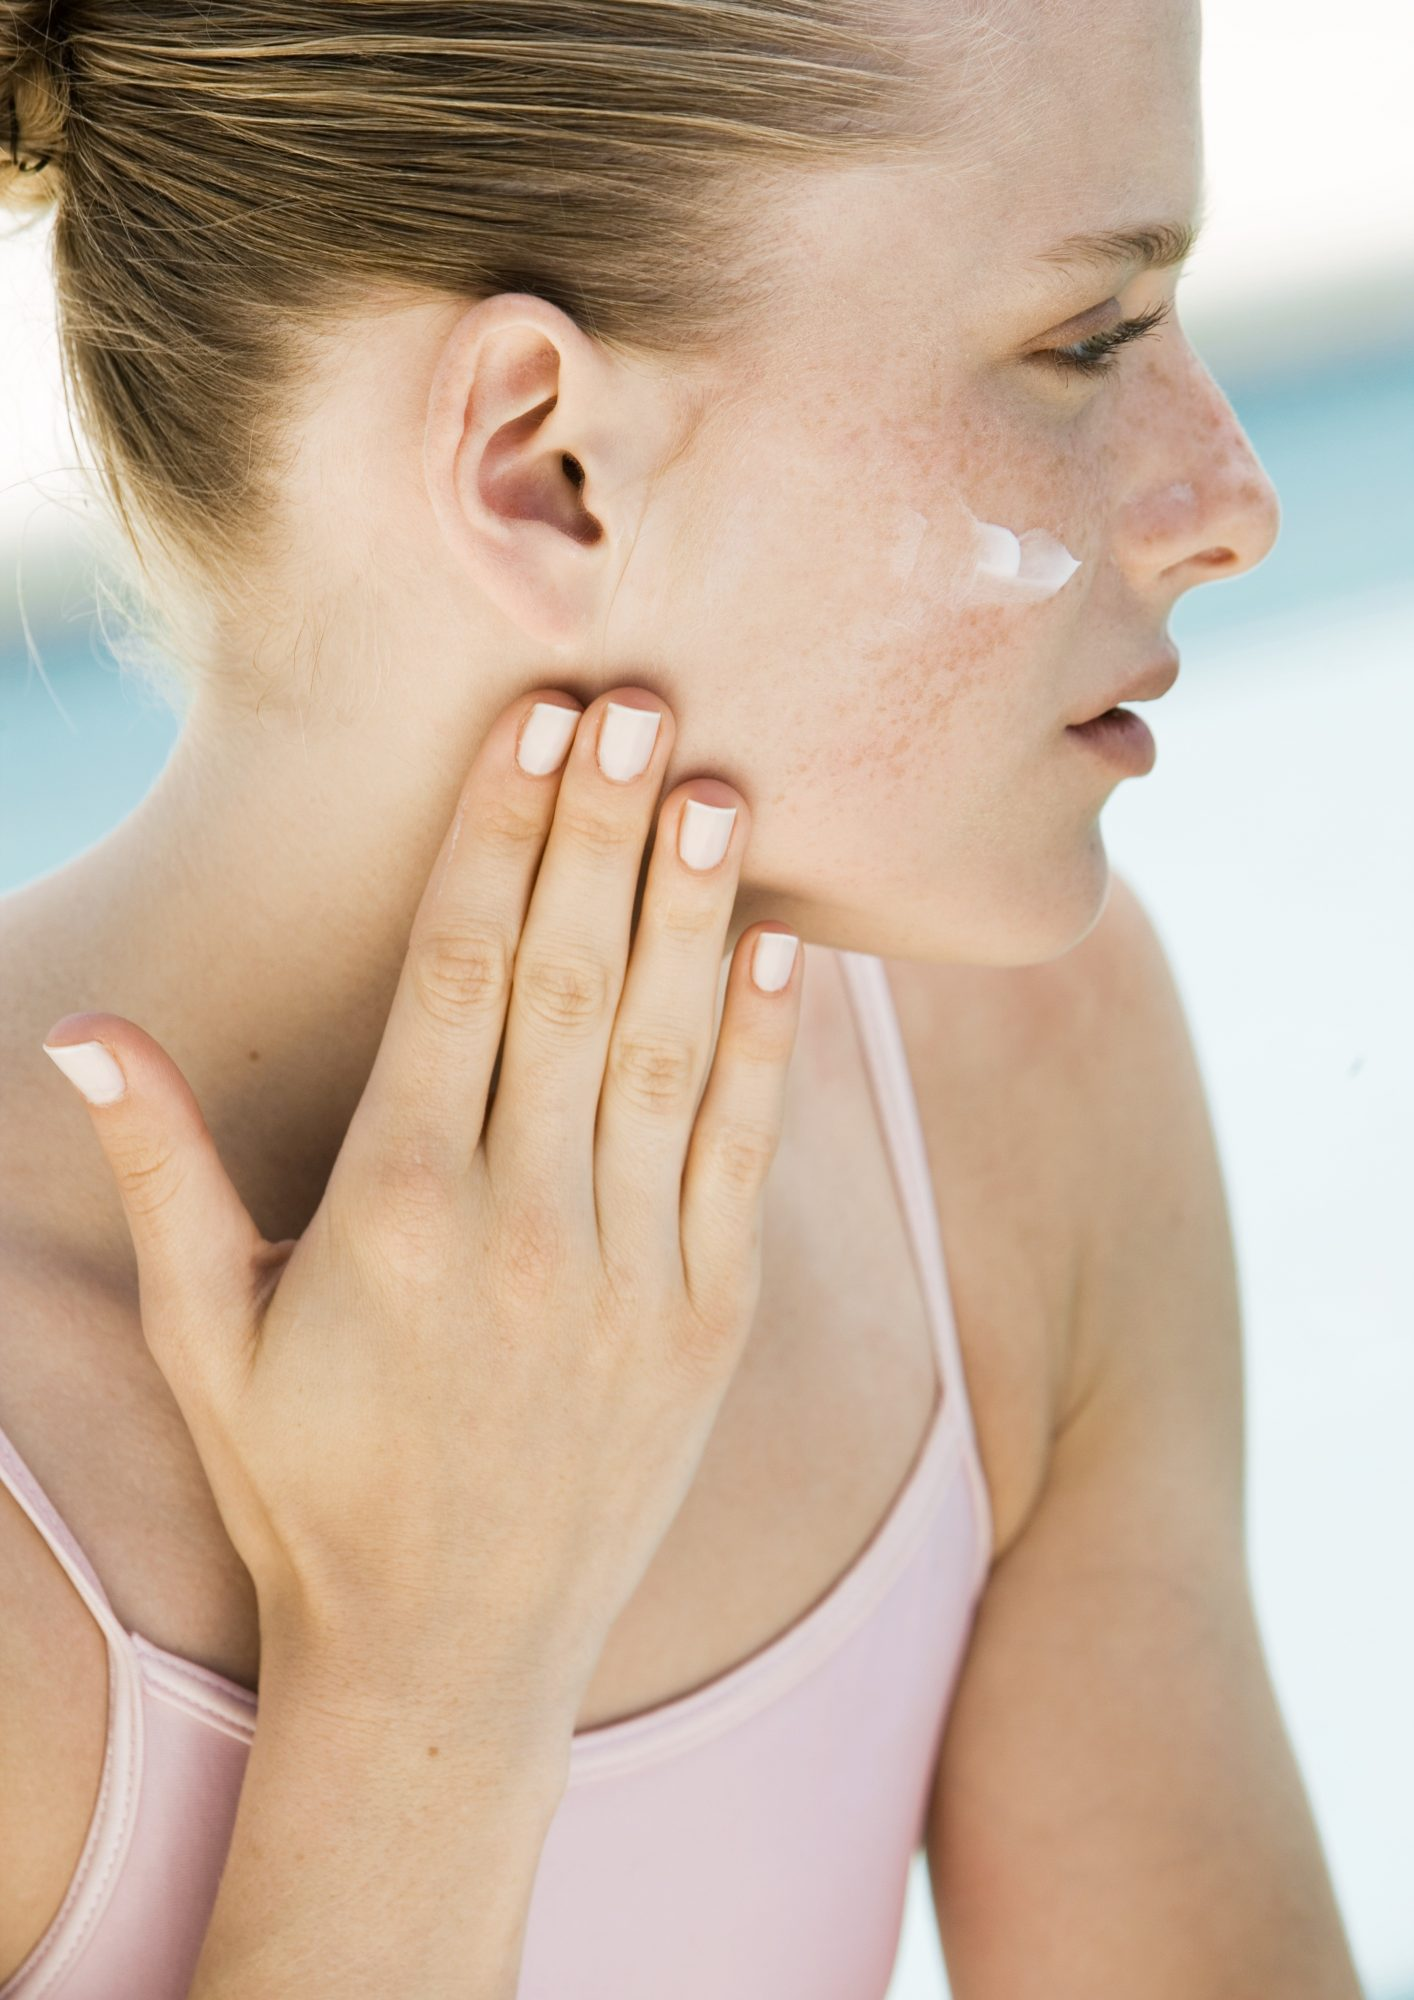 Myth: You don't need sunscreen if you'll be indoors all day